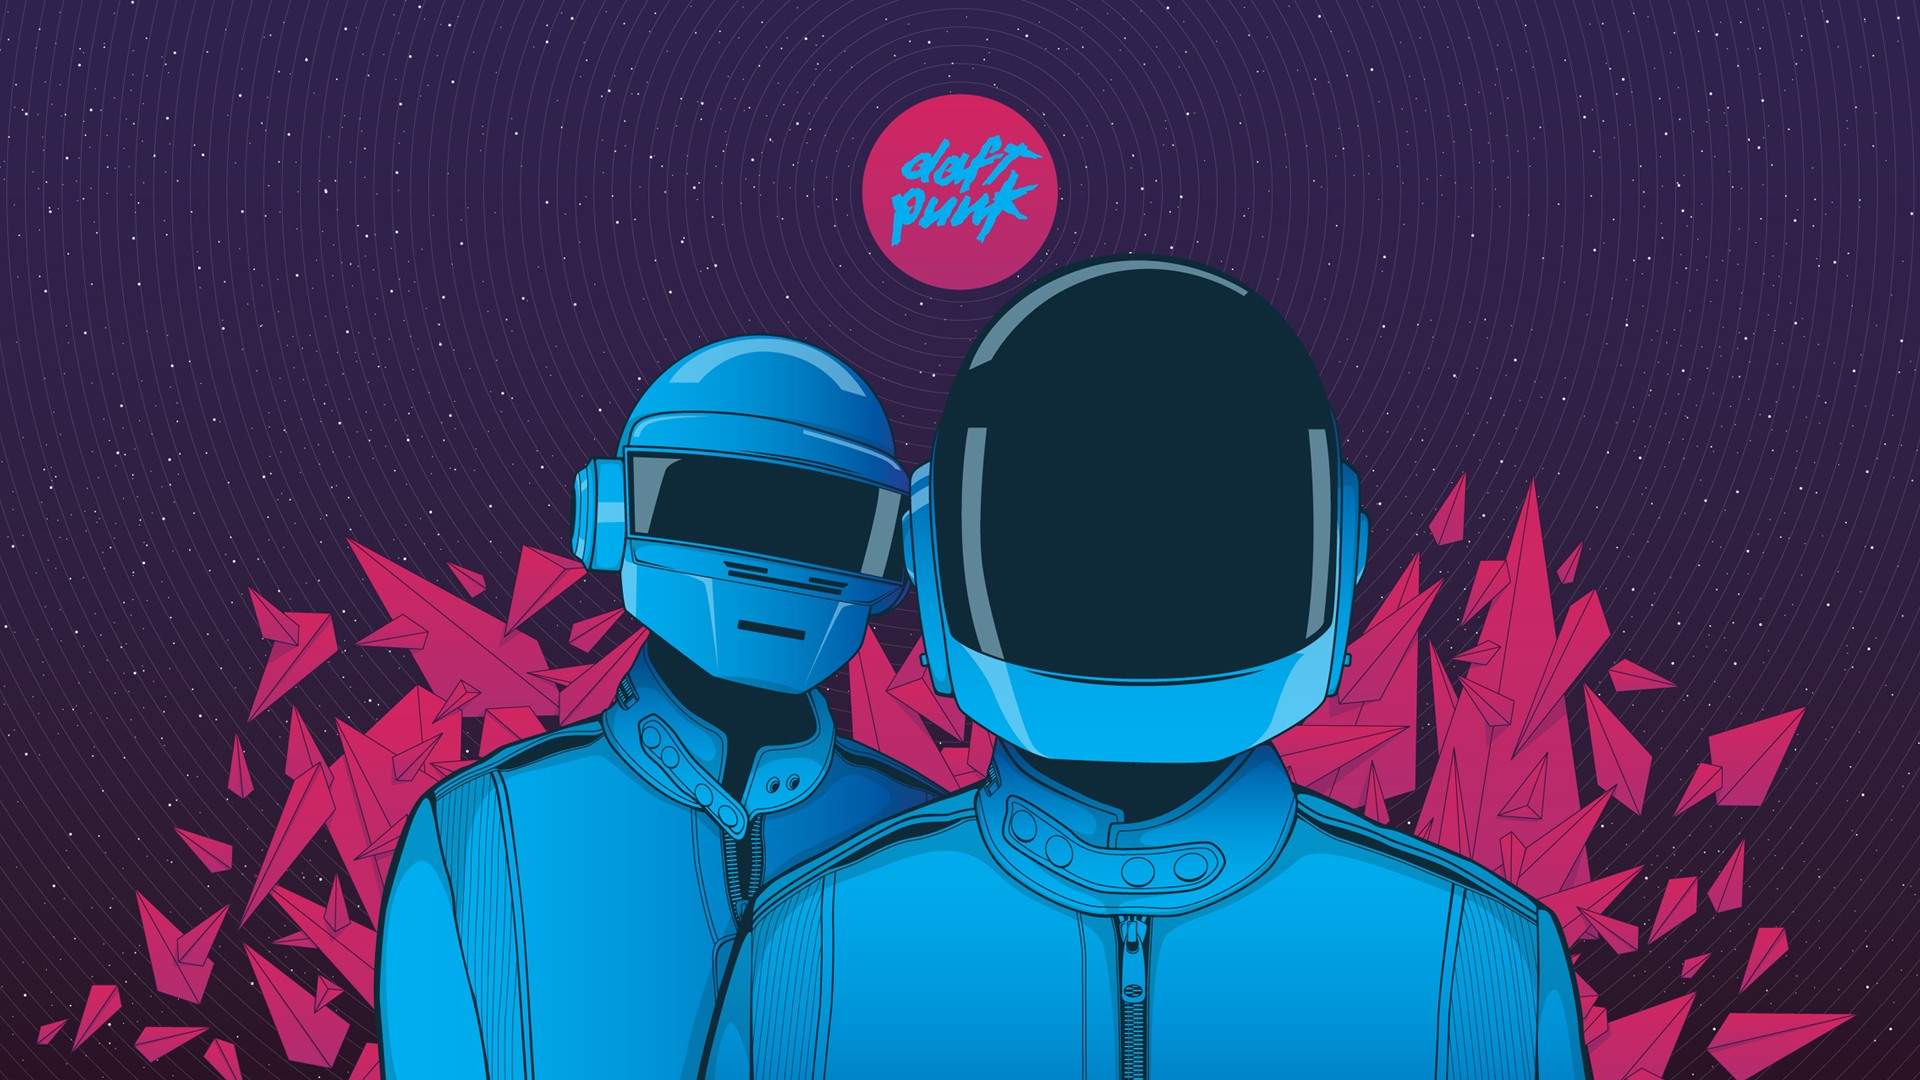 Daft Punk HD Wallpapers